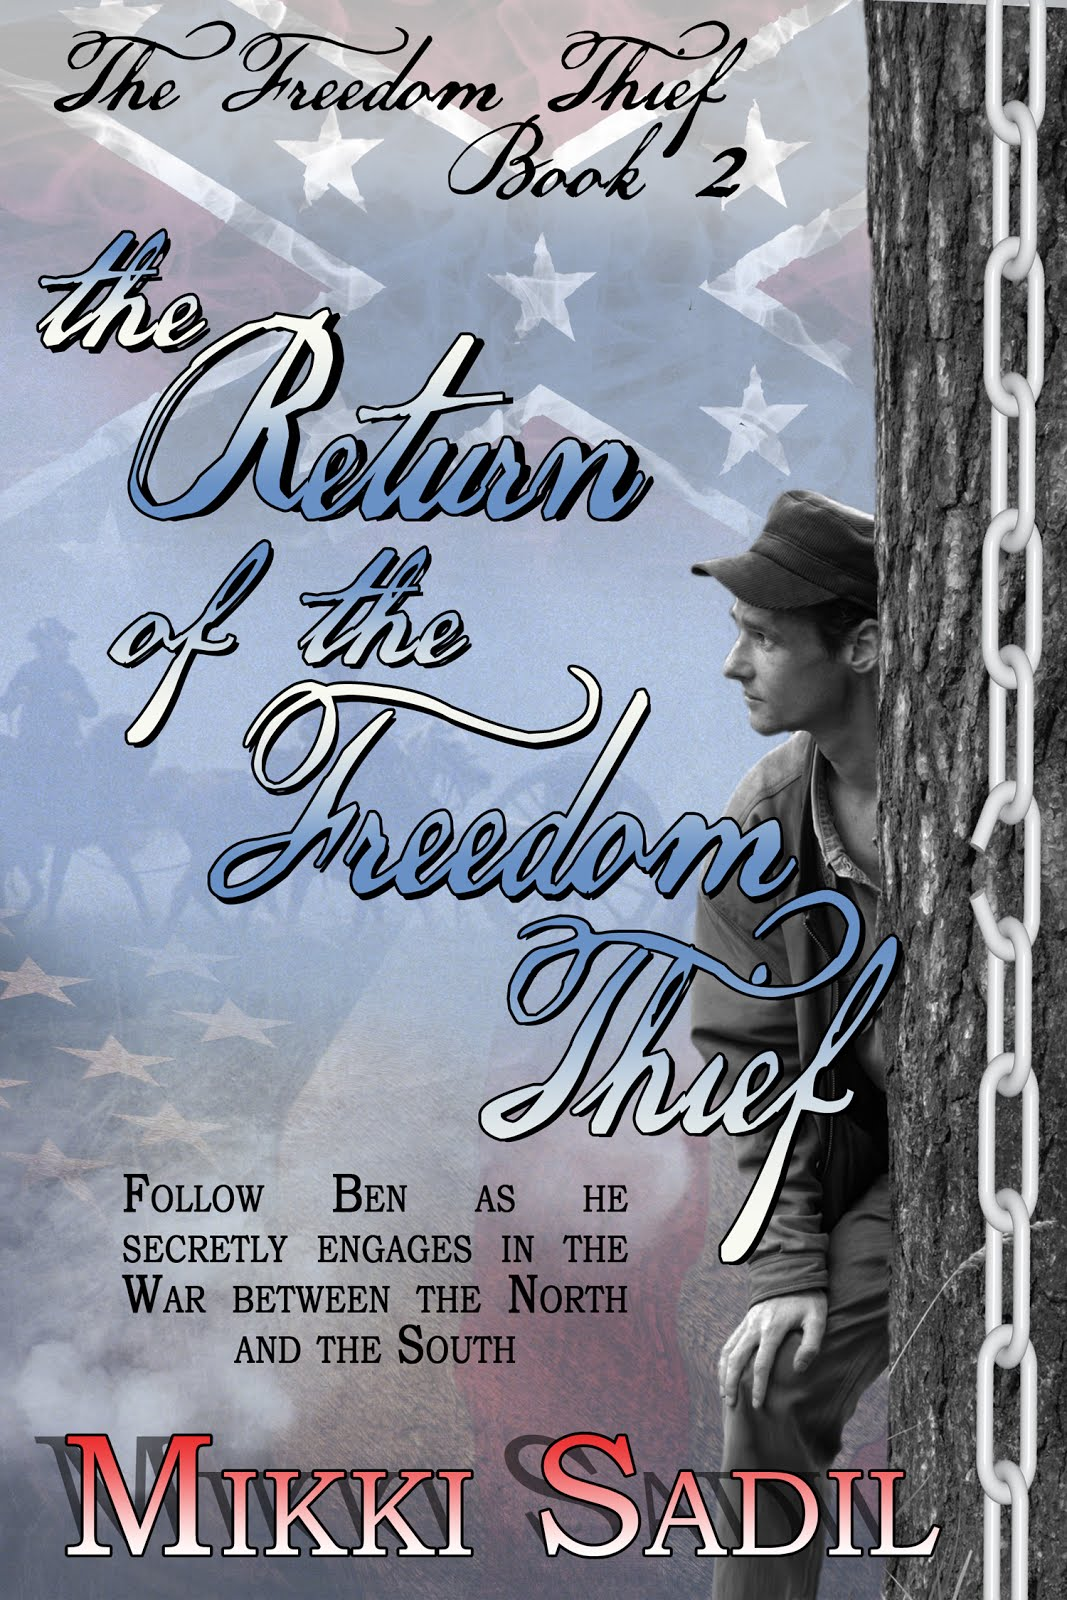 The Return of The Freedom Thief